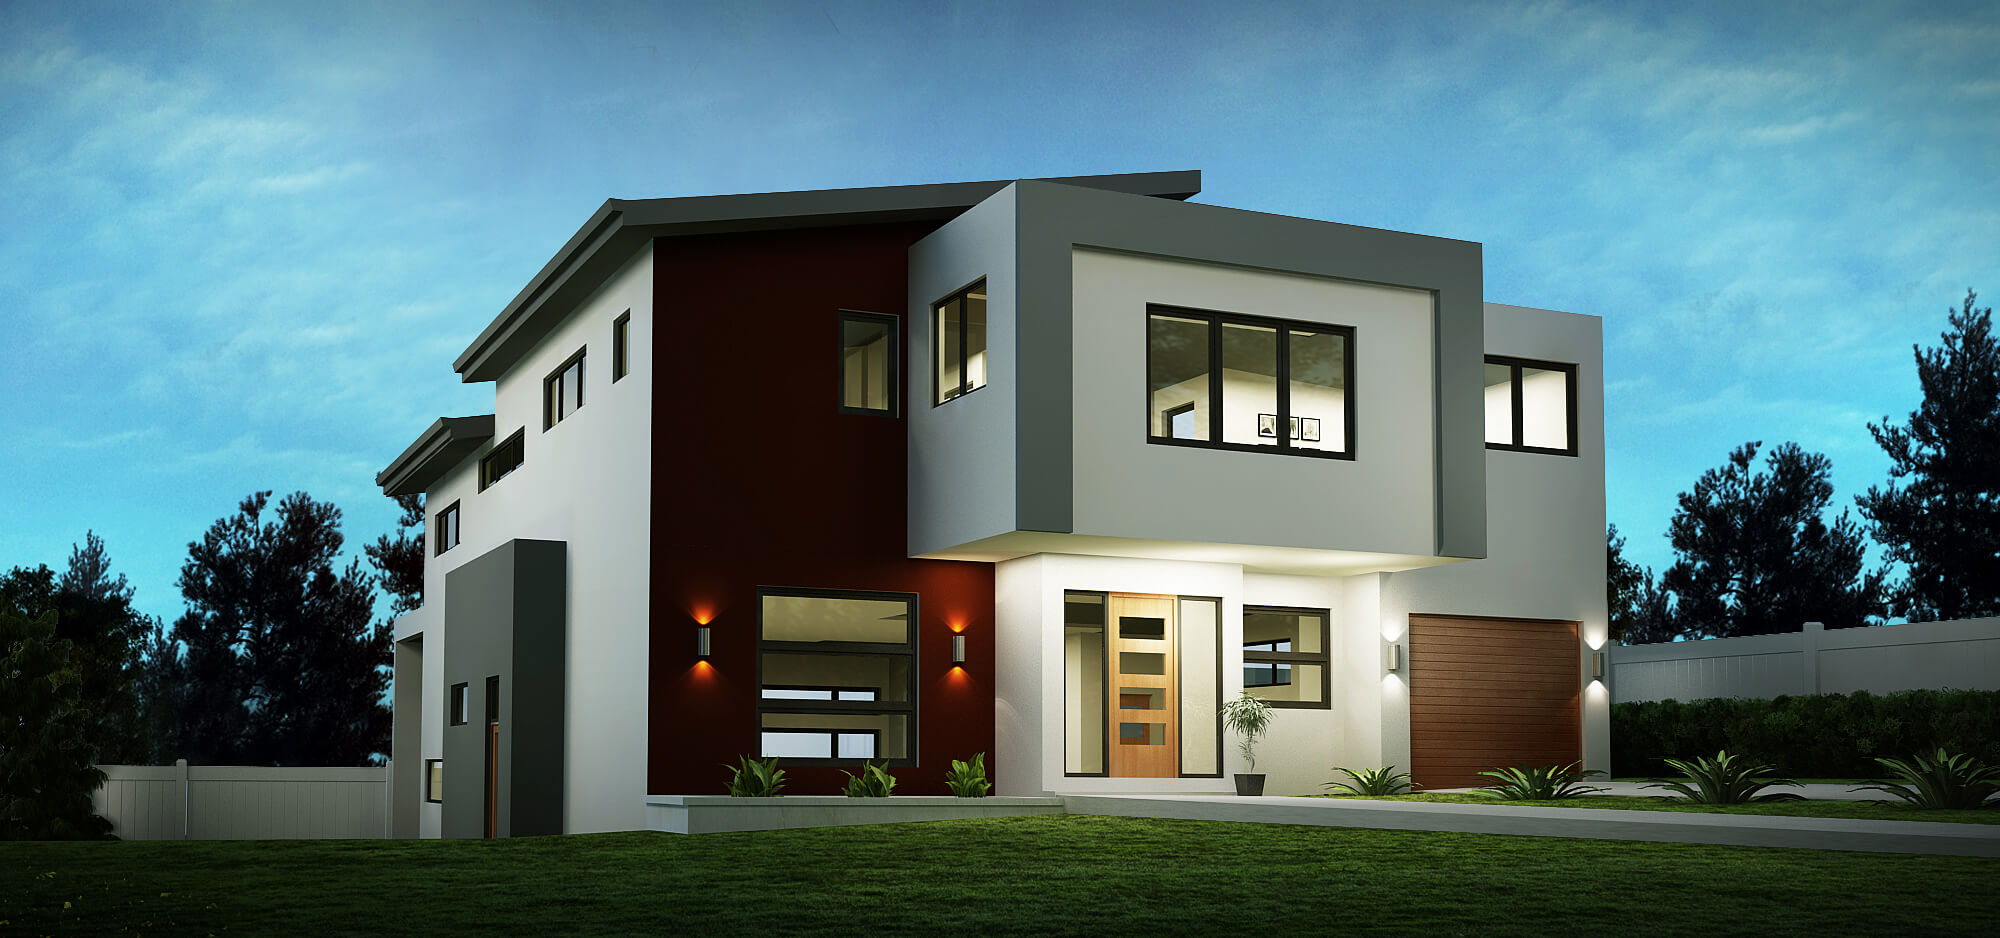 House design for sloping block ideas home building plans for Home designs for sloping blocks